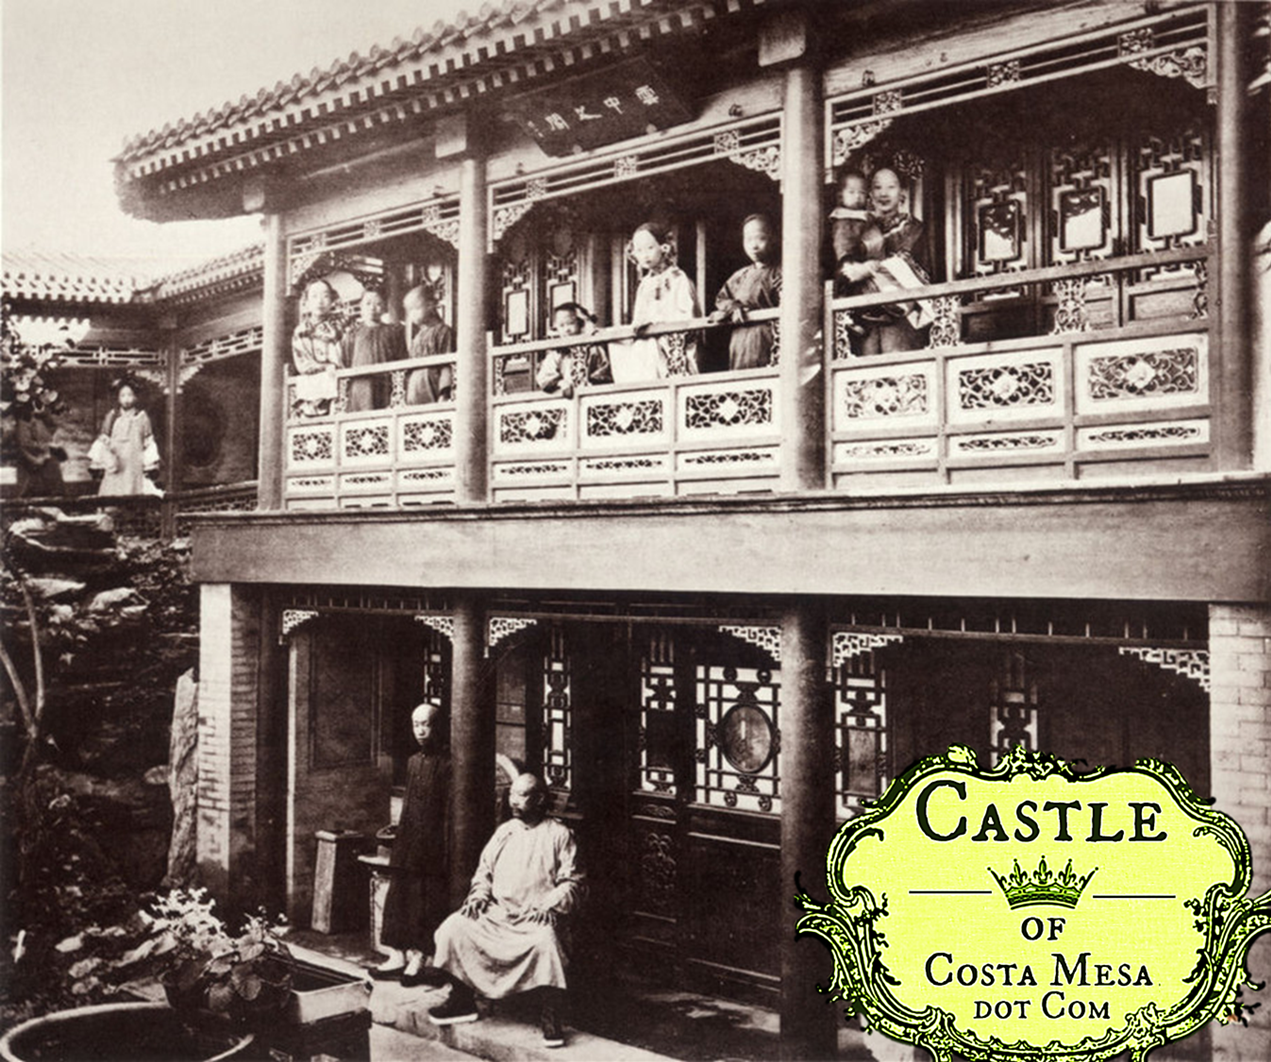 gong wang's mansion with logo